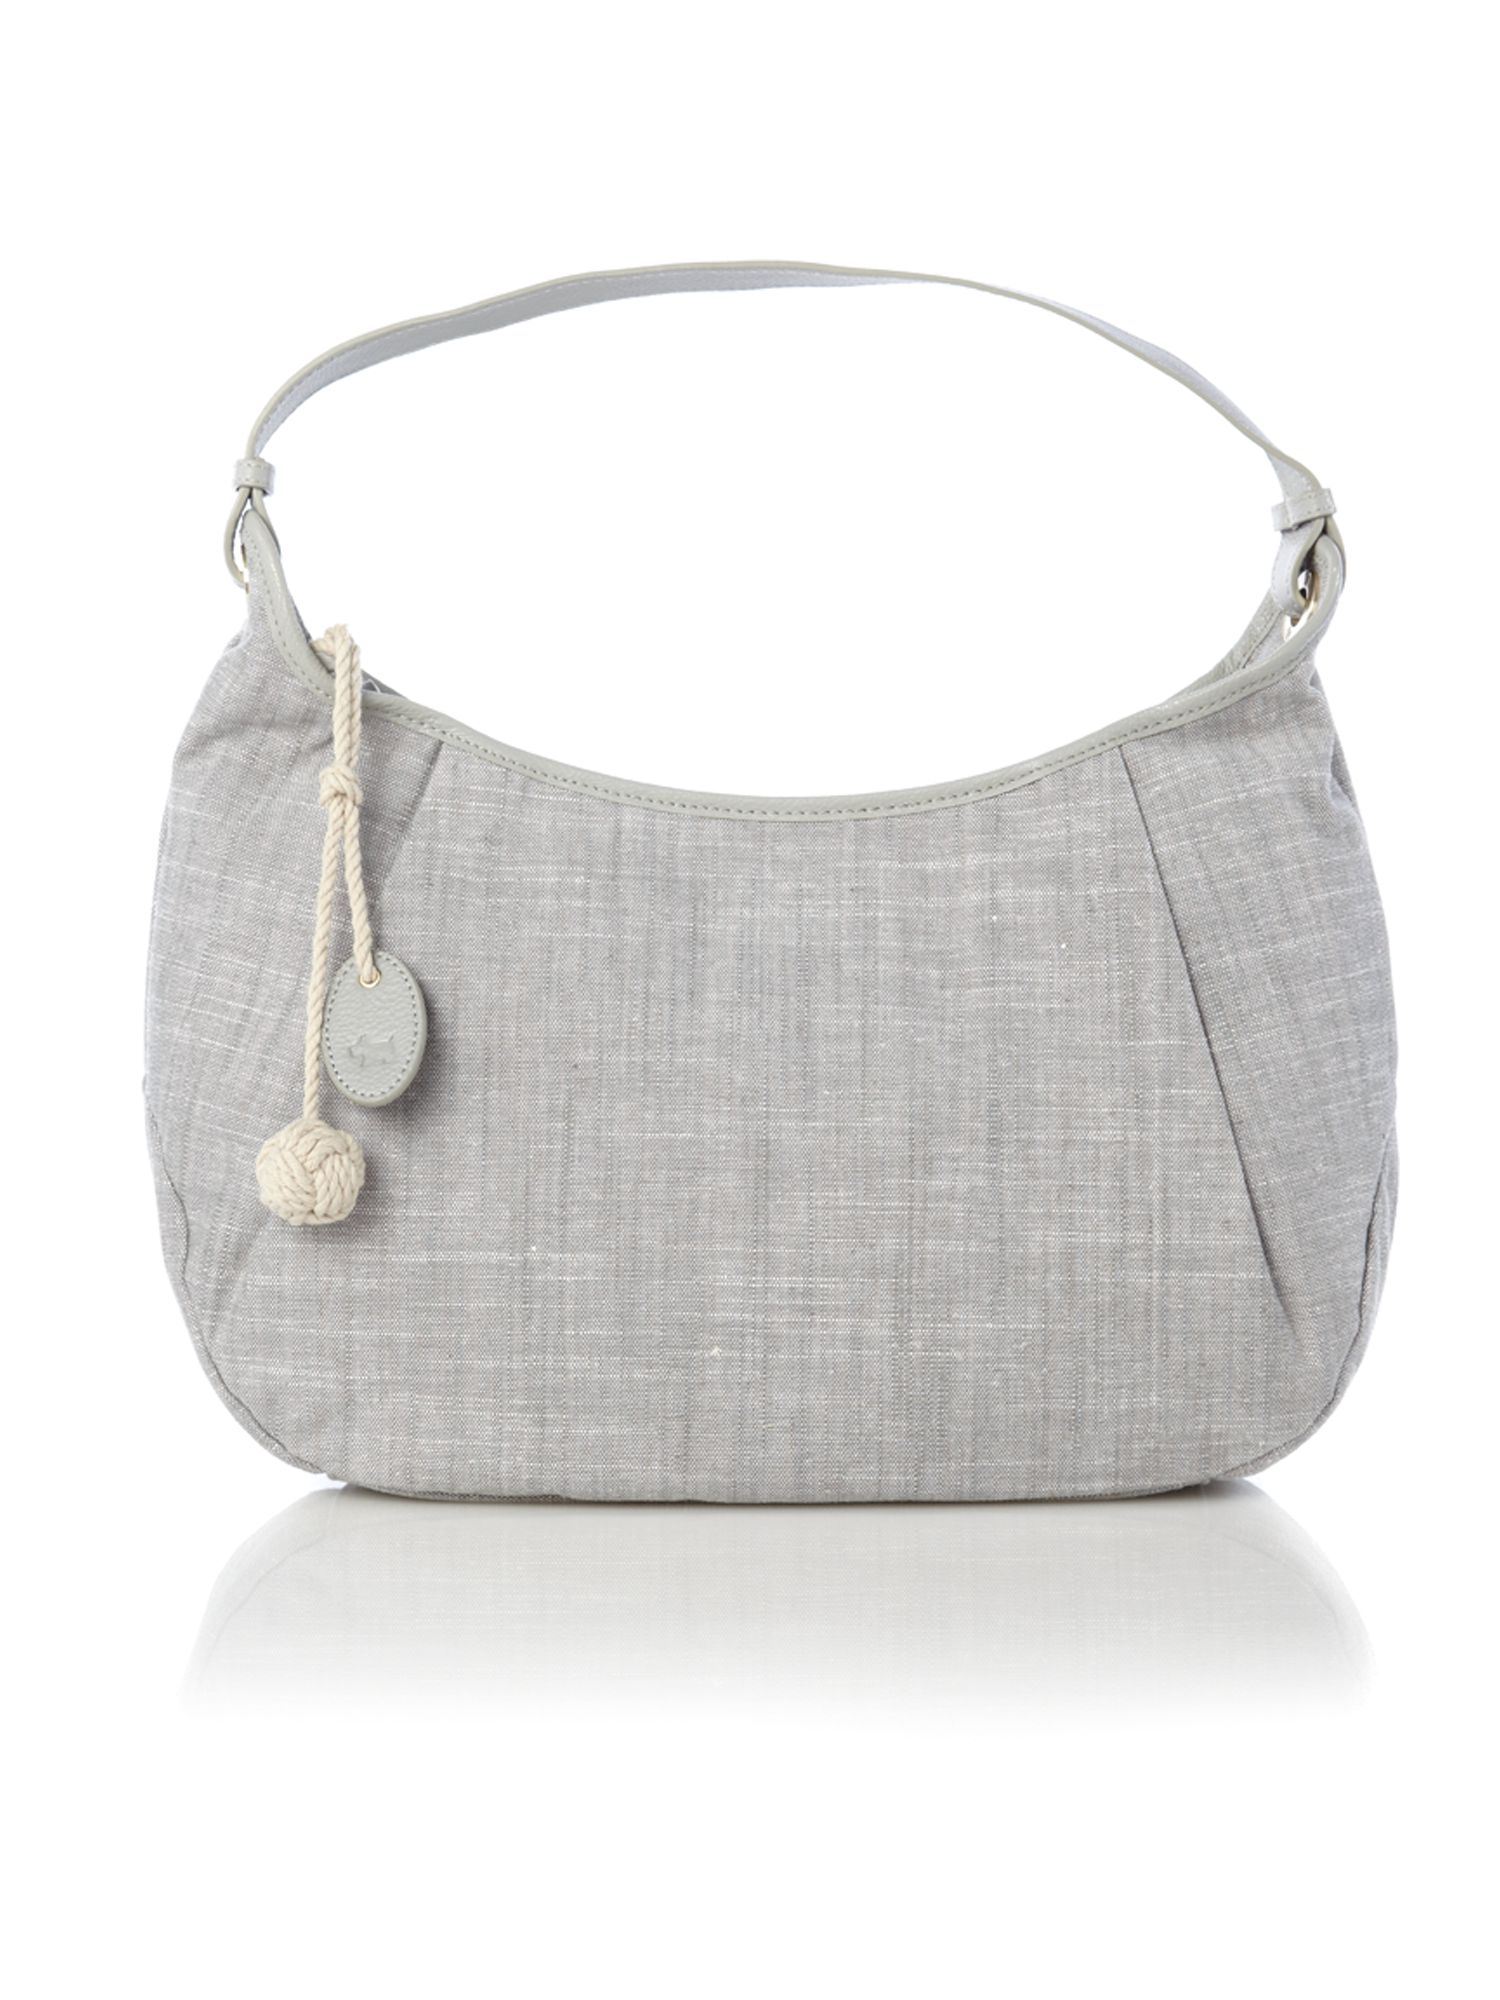 Wanstead canvas hobo bag